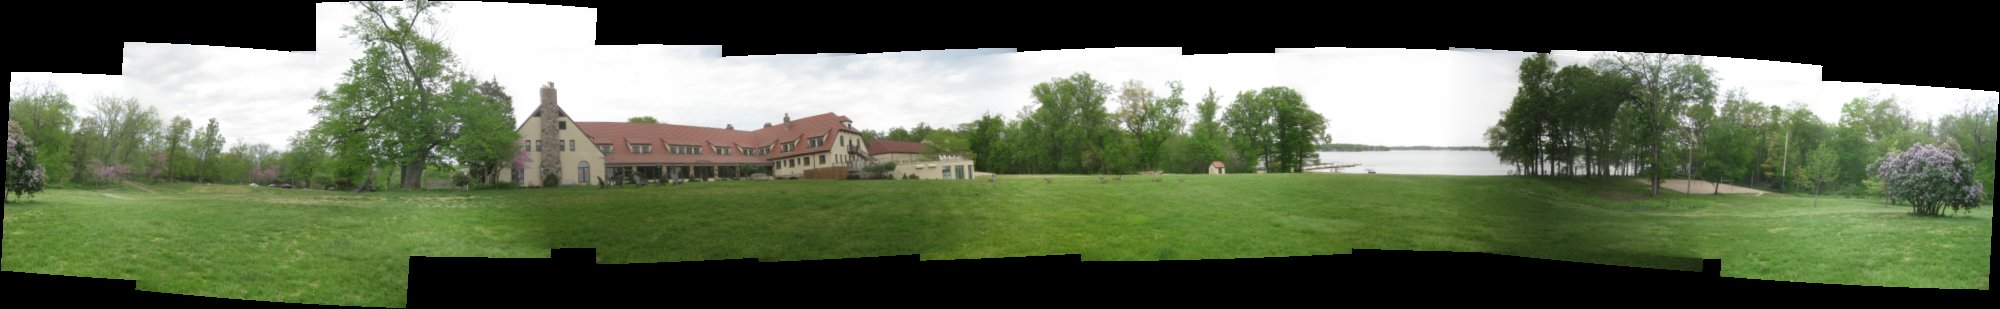 panoramic photo of the Potawatomi Inn  at Pokagon State Park in Angola Indiana